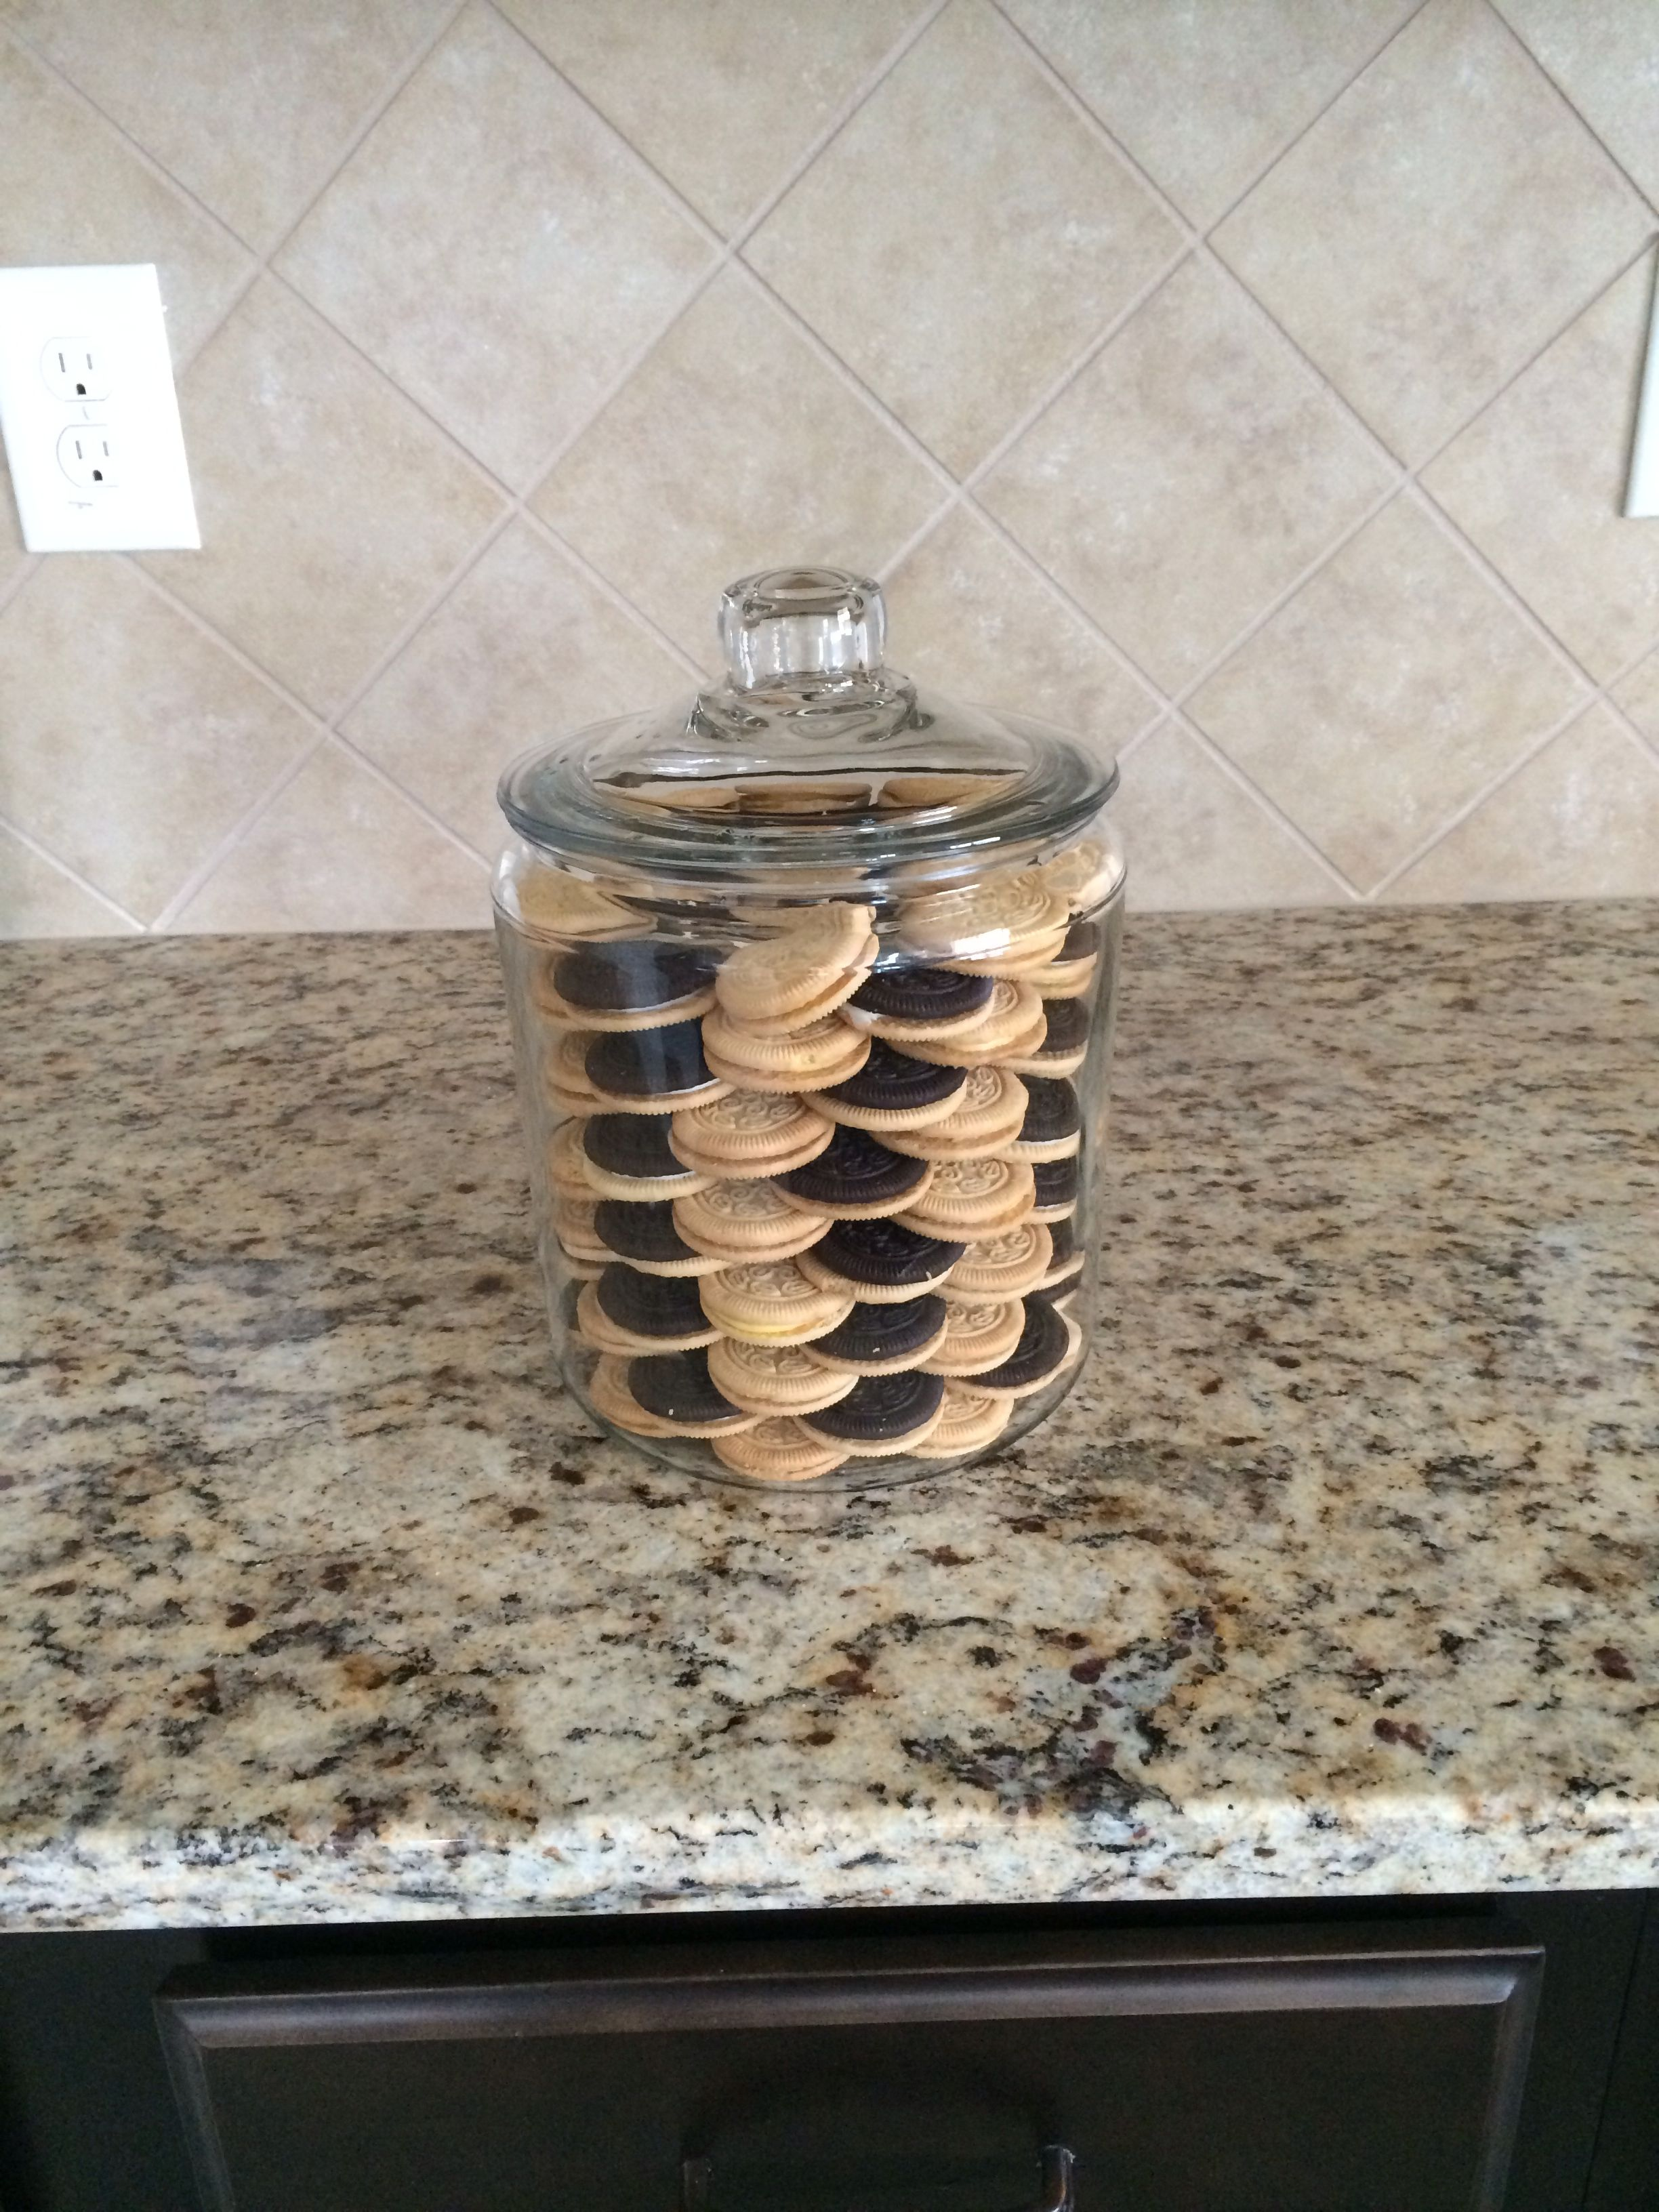 Khloe Kardashian Cookie Jar I Got Inspired From Khloe Kardashian I Love My New Cookie Jar